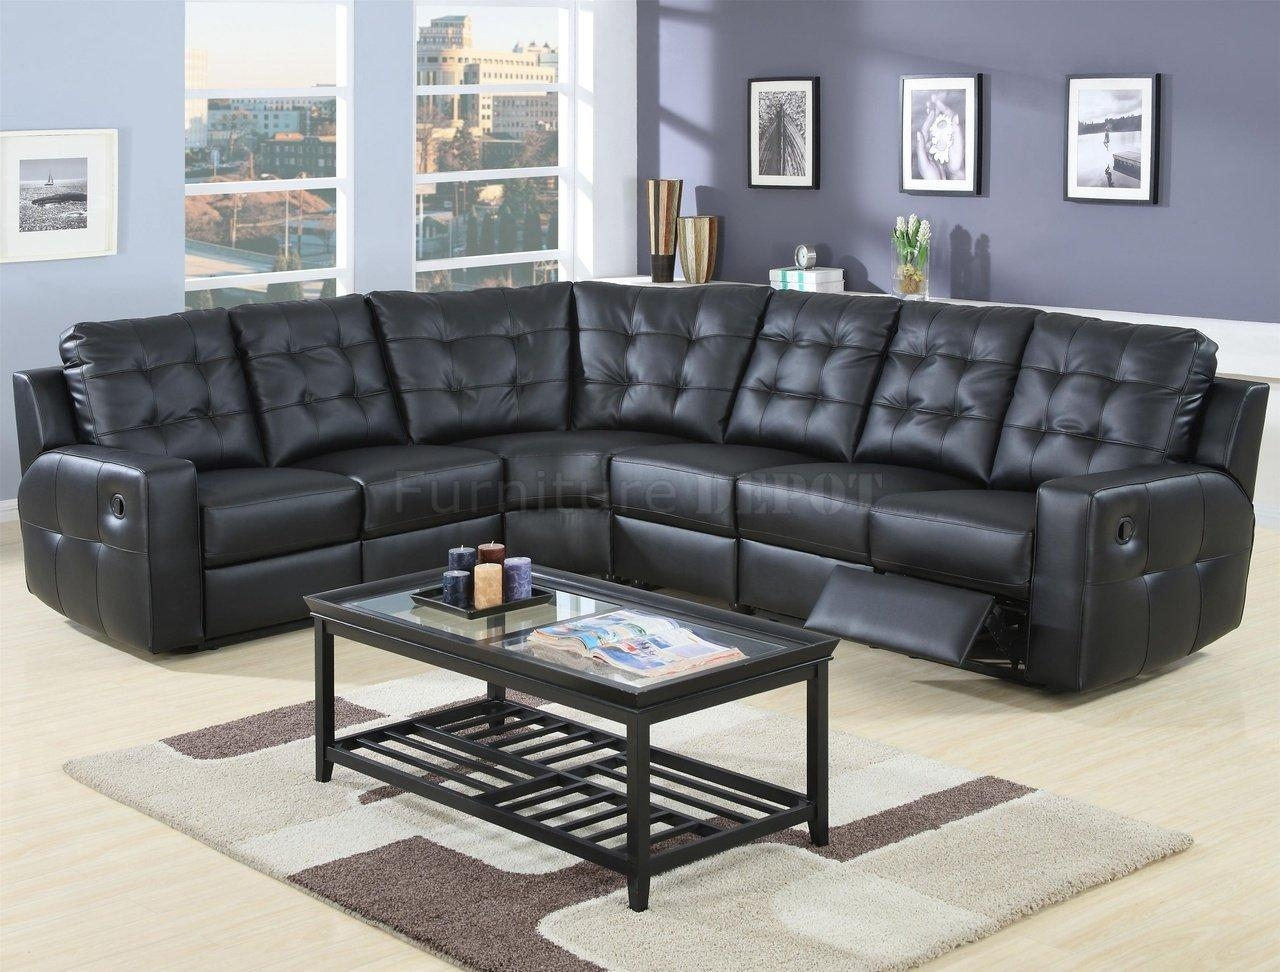 Furniture: Incredible Style Sectional Reclining Sofas For Your For Curved Sectional Sofa With Recliner (Image 9 of 15)